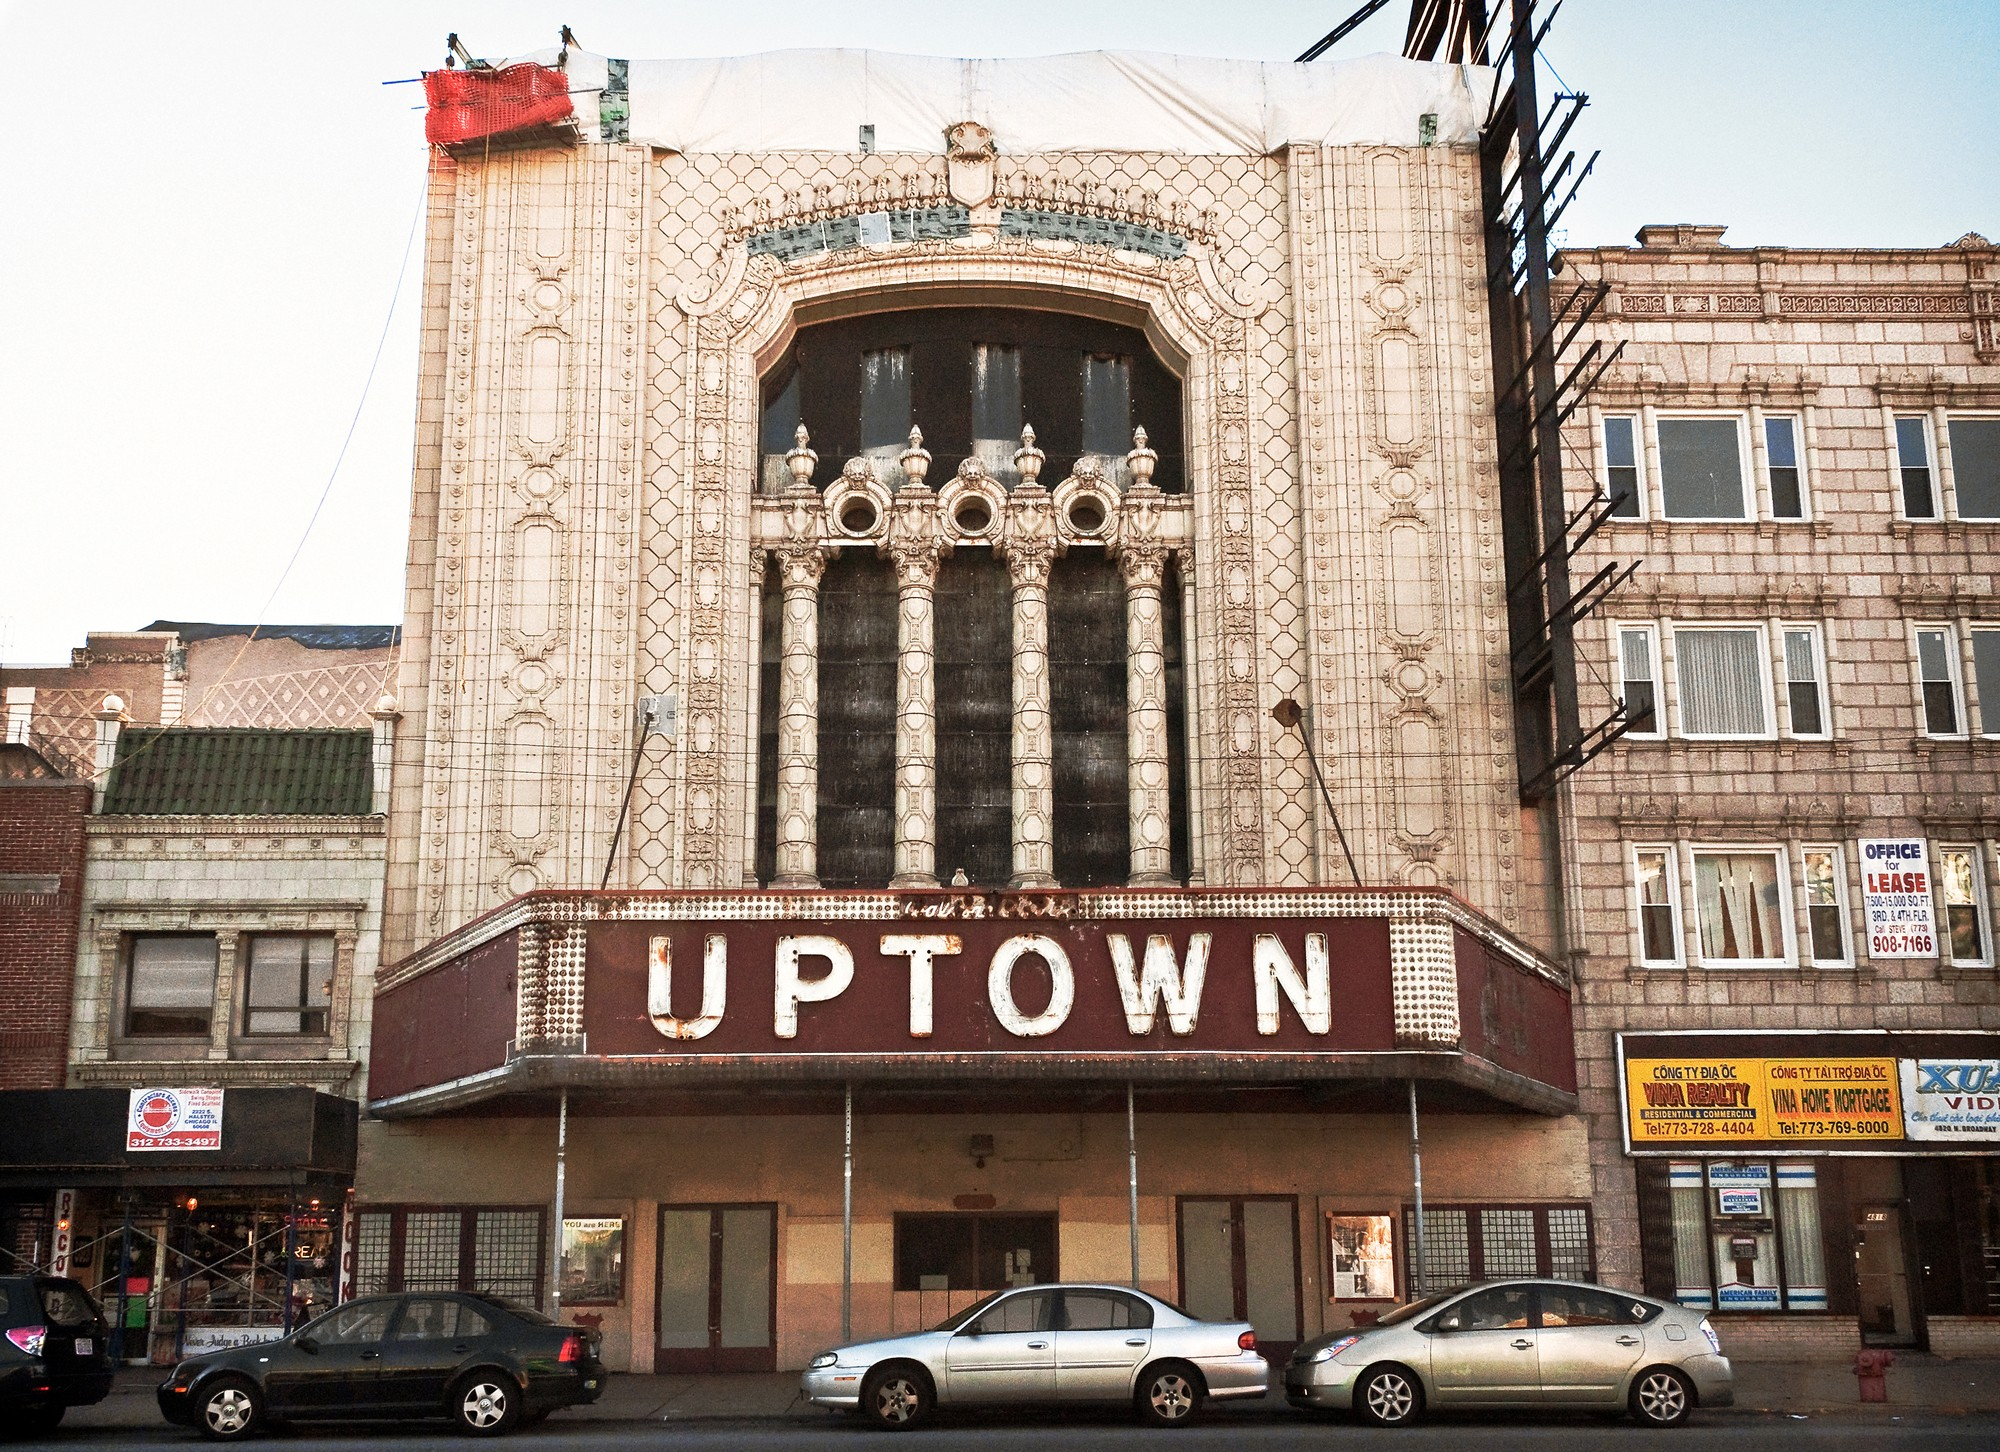 The Uptown Theatre today. Notice that the towers have been removed for safety and preservation.